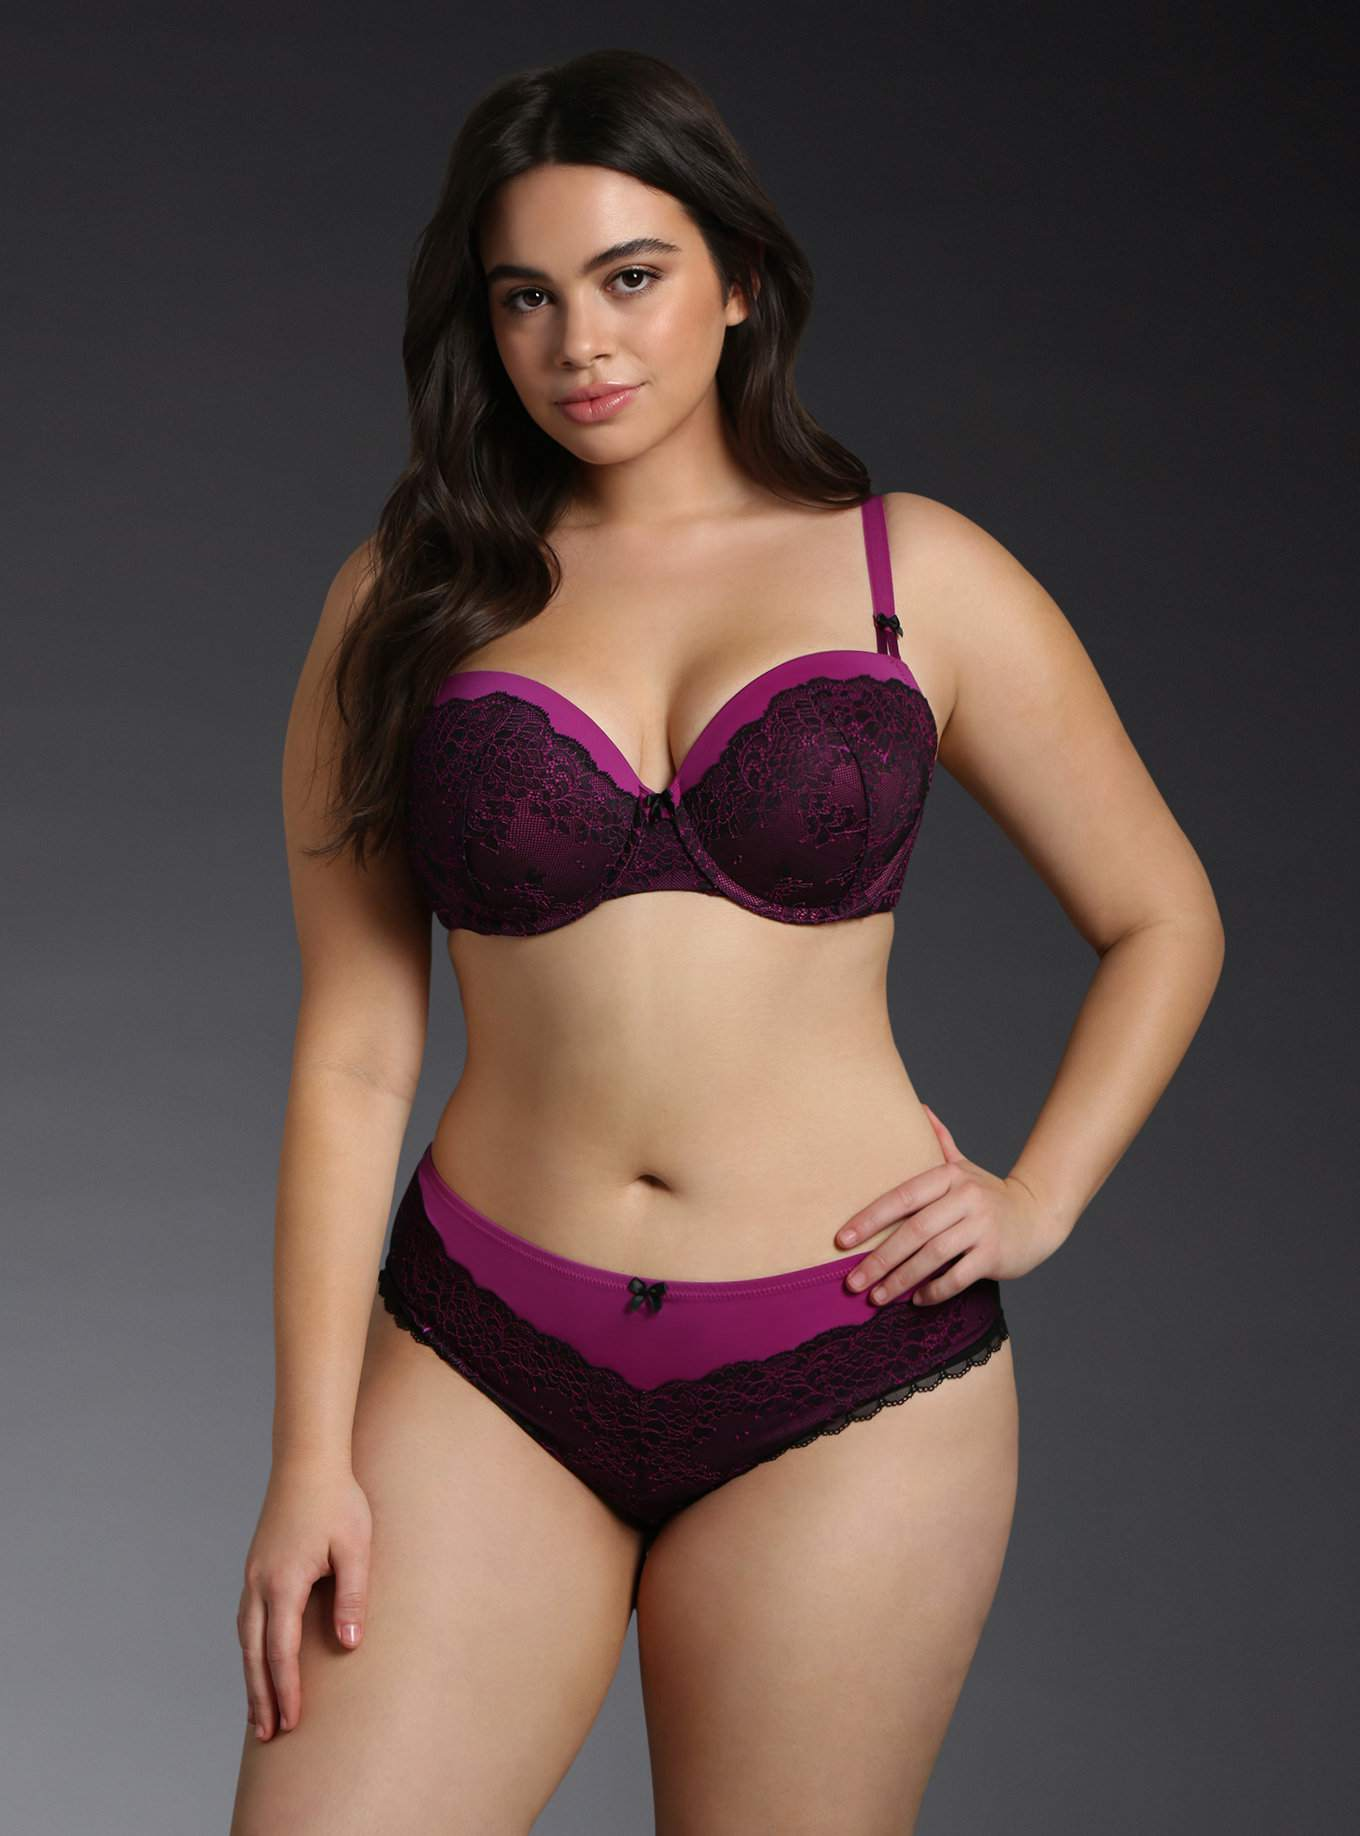 4b423e5df5 Where to Buy Plus Size Lingerie and Full Figured Bras